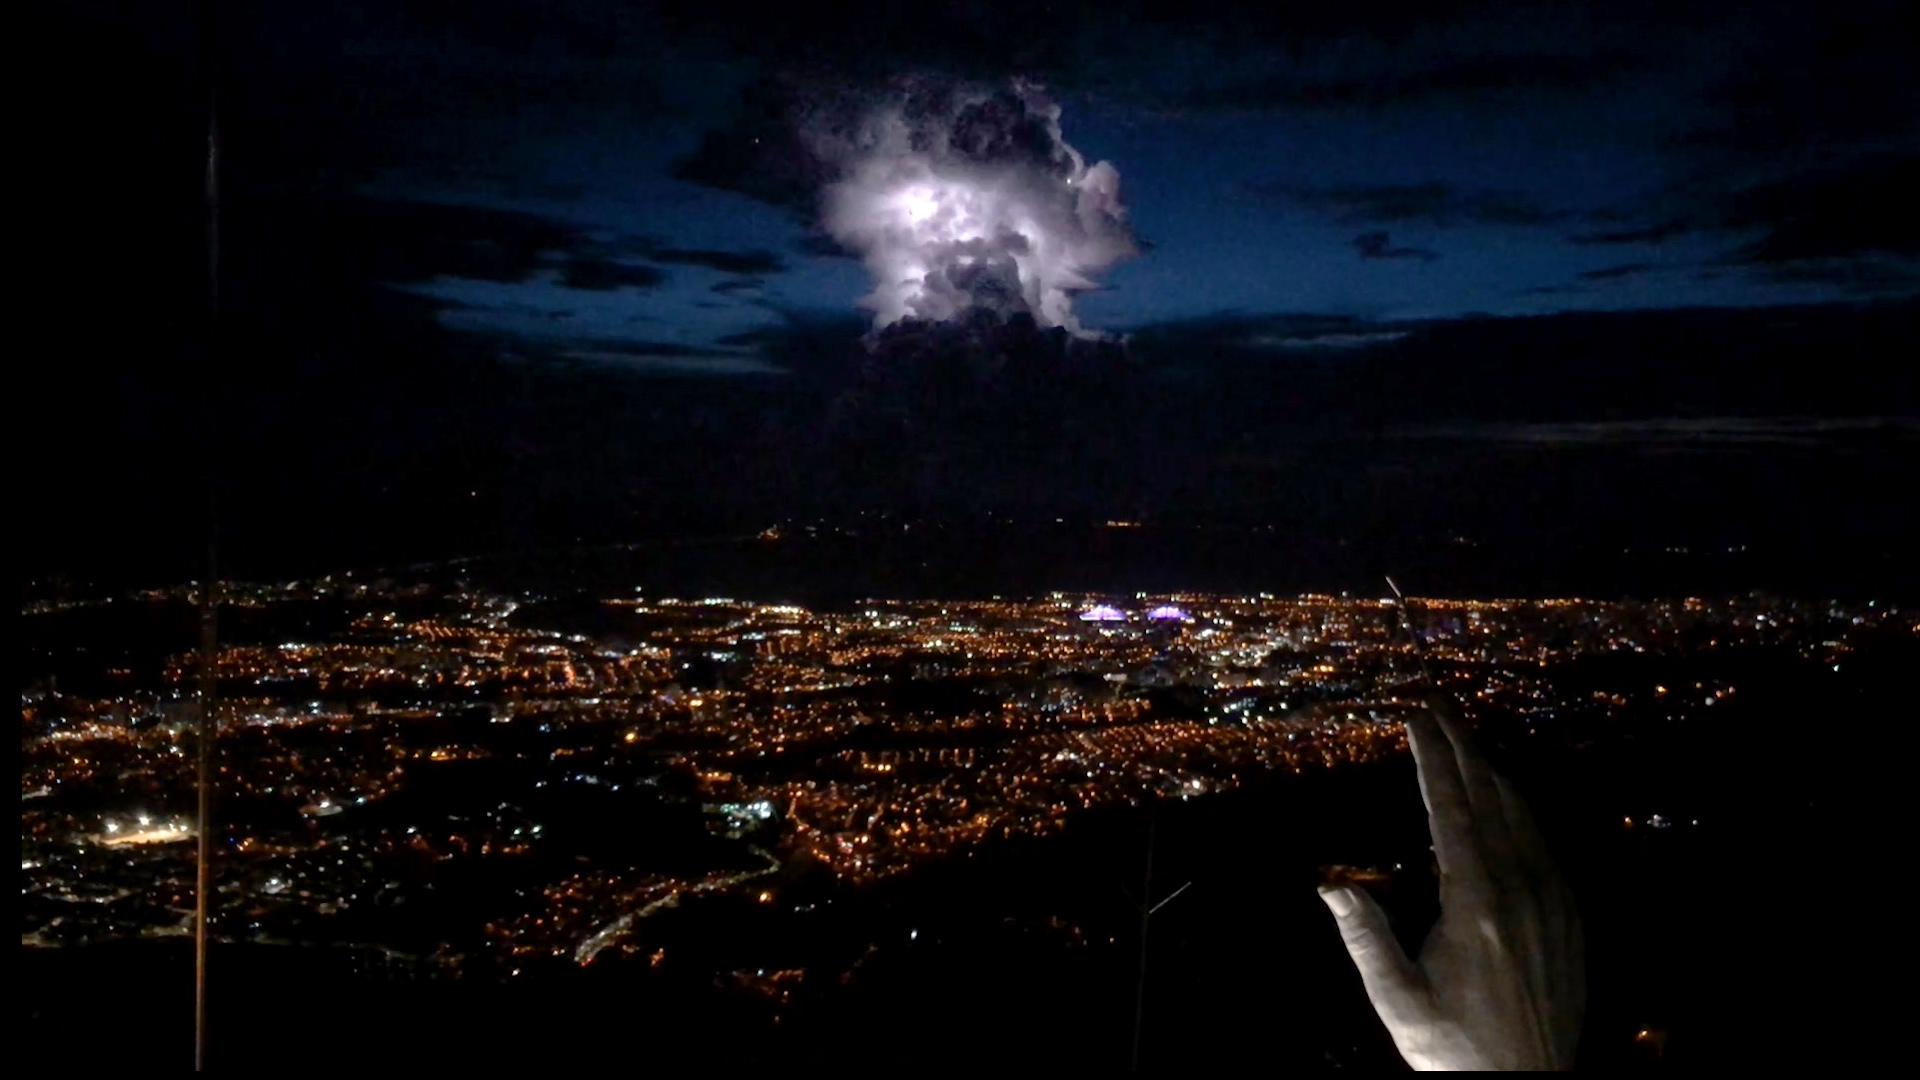 View from the top of the Christ statue at Ecoparque Cerro del Santísimo during a lightning storm.